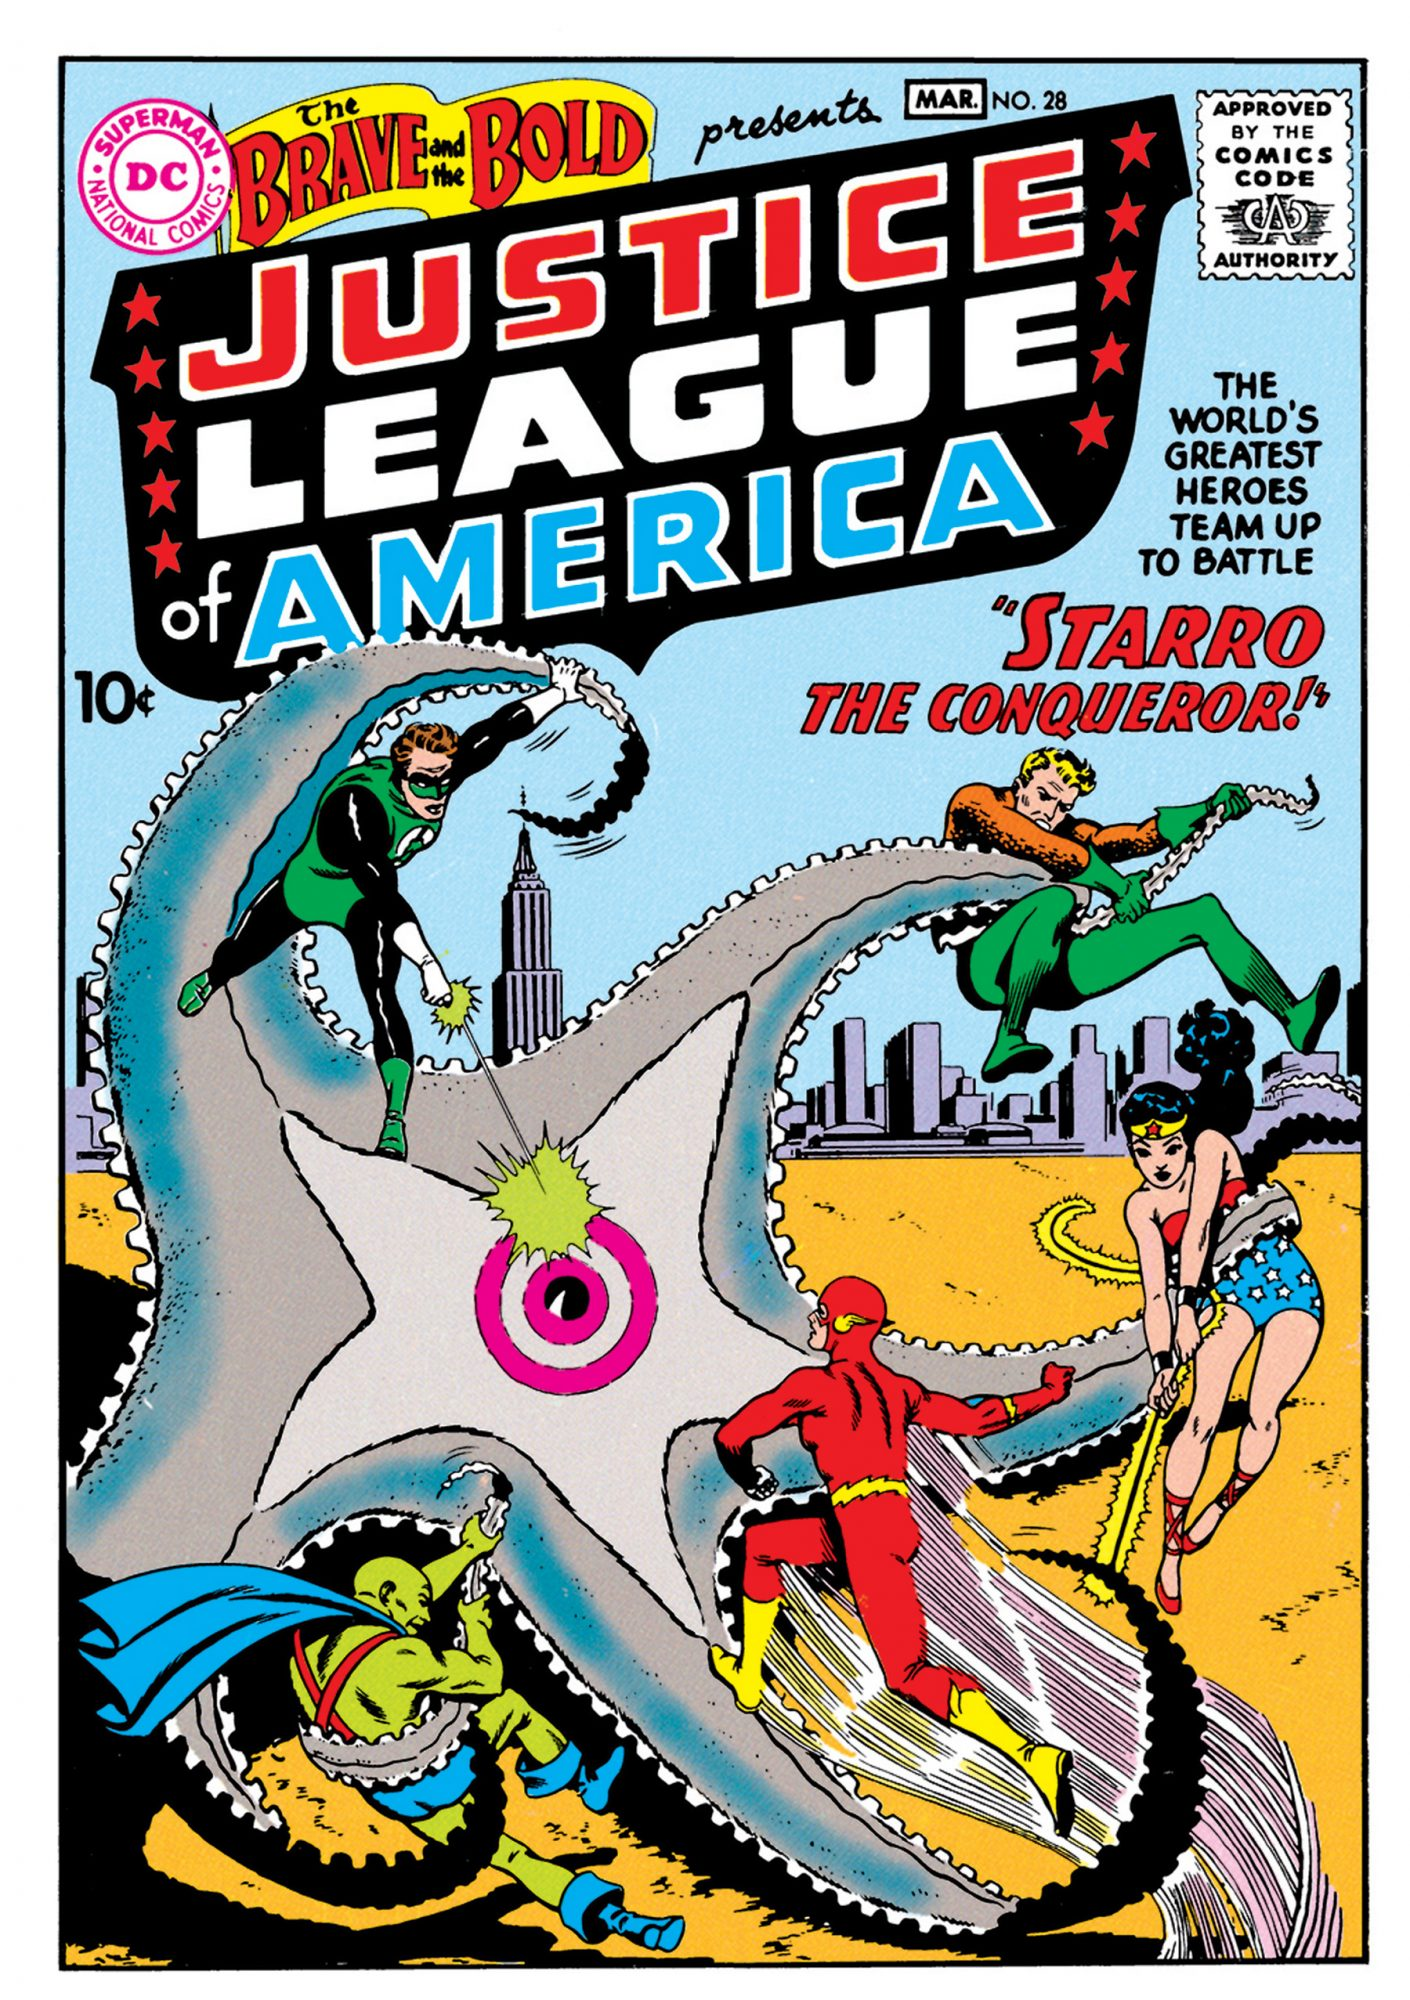 1960: FIRST APPEARANCE